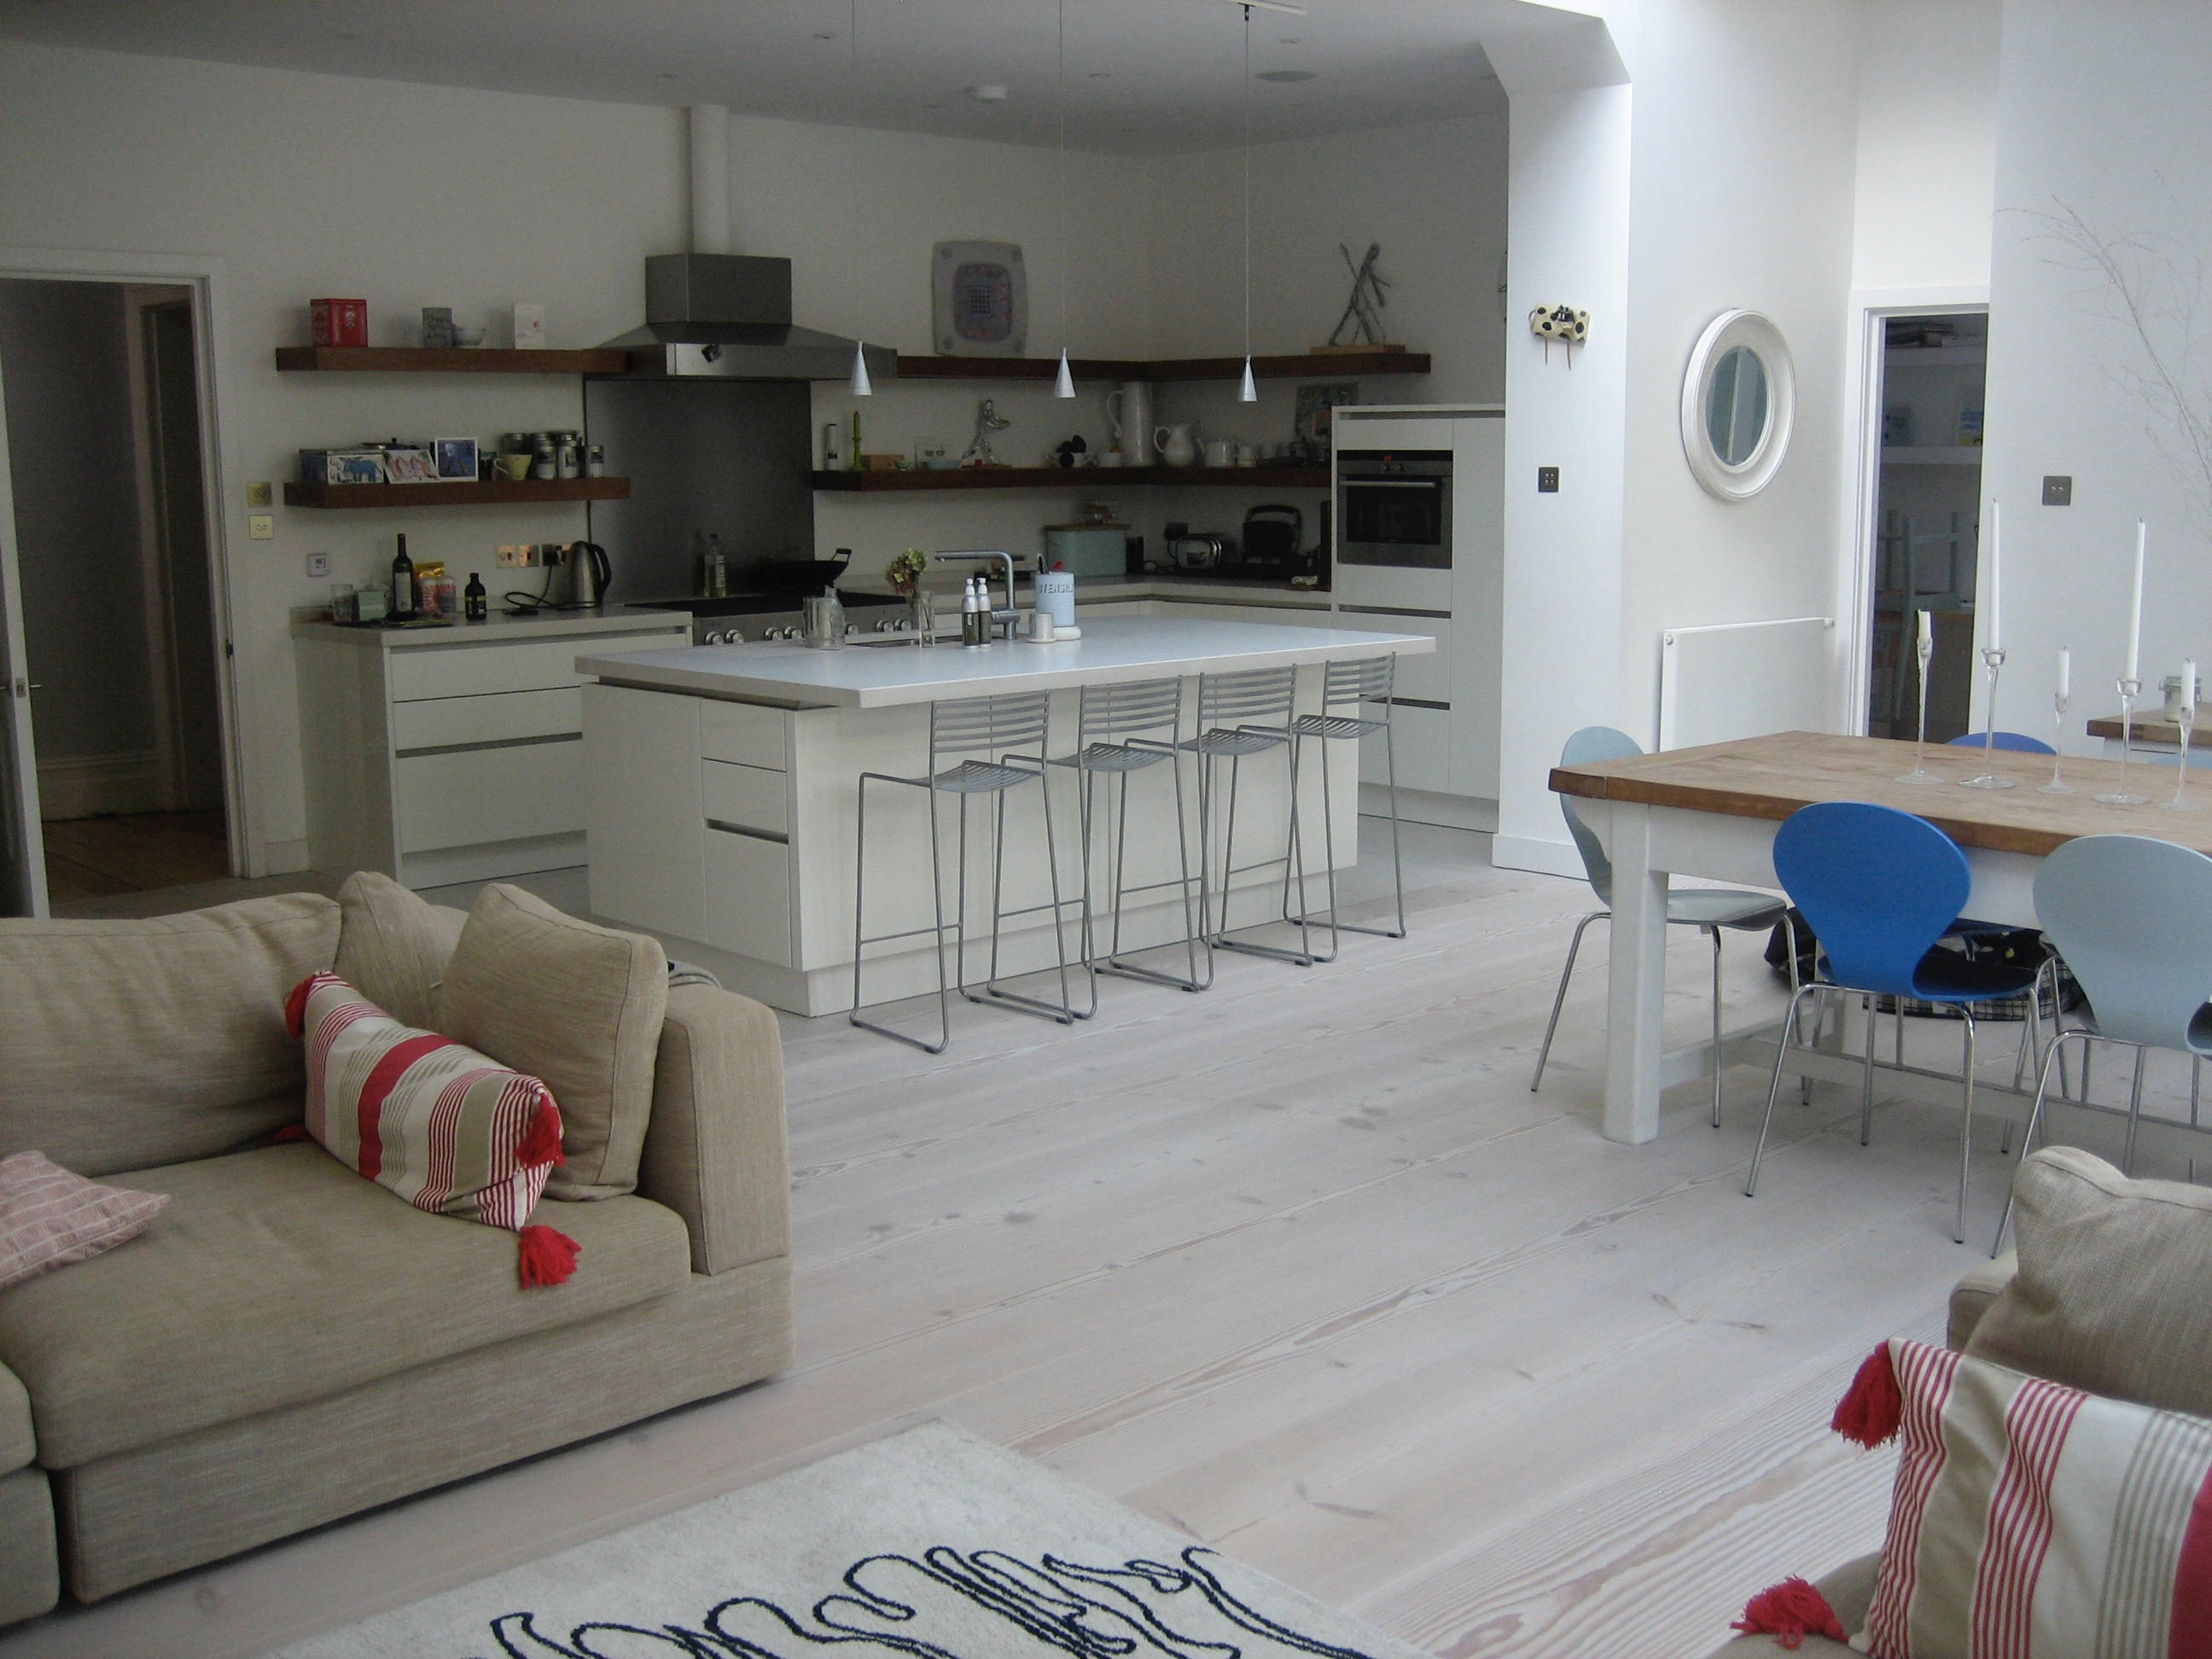 Tomhara a luxury self catering holiday home in rock for Interior designer address